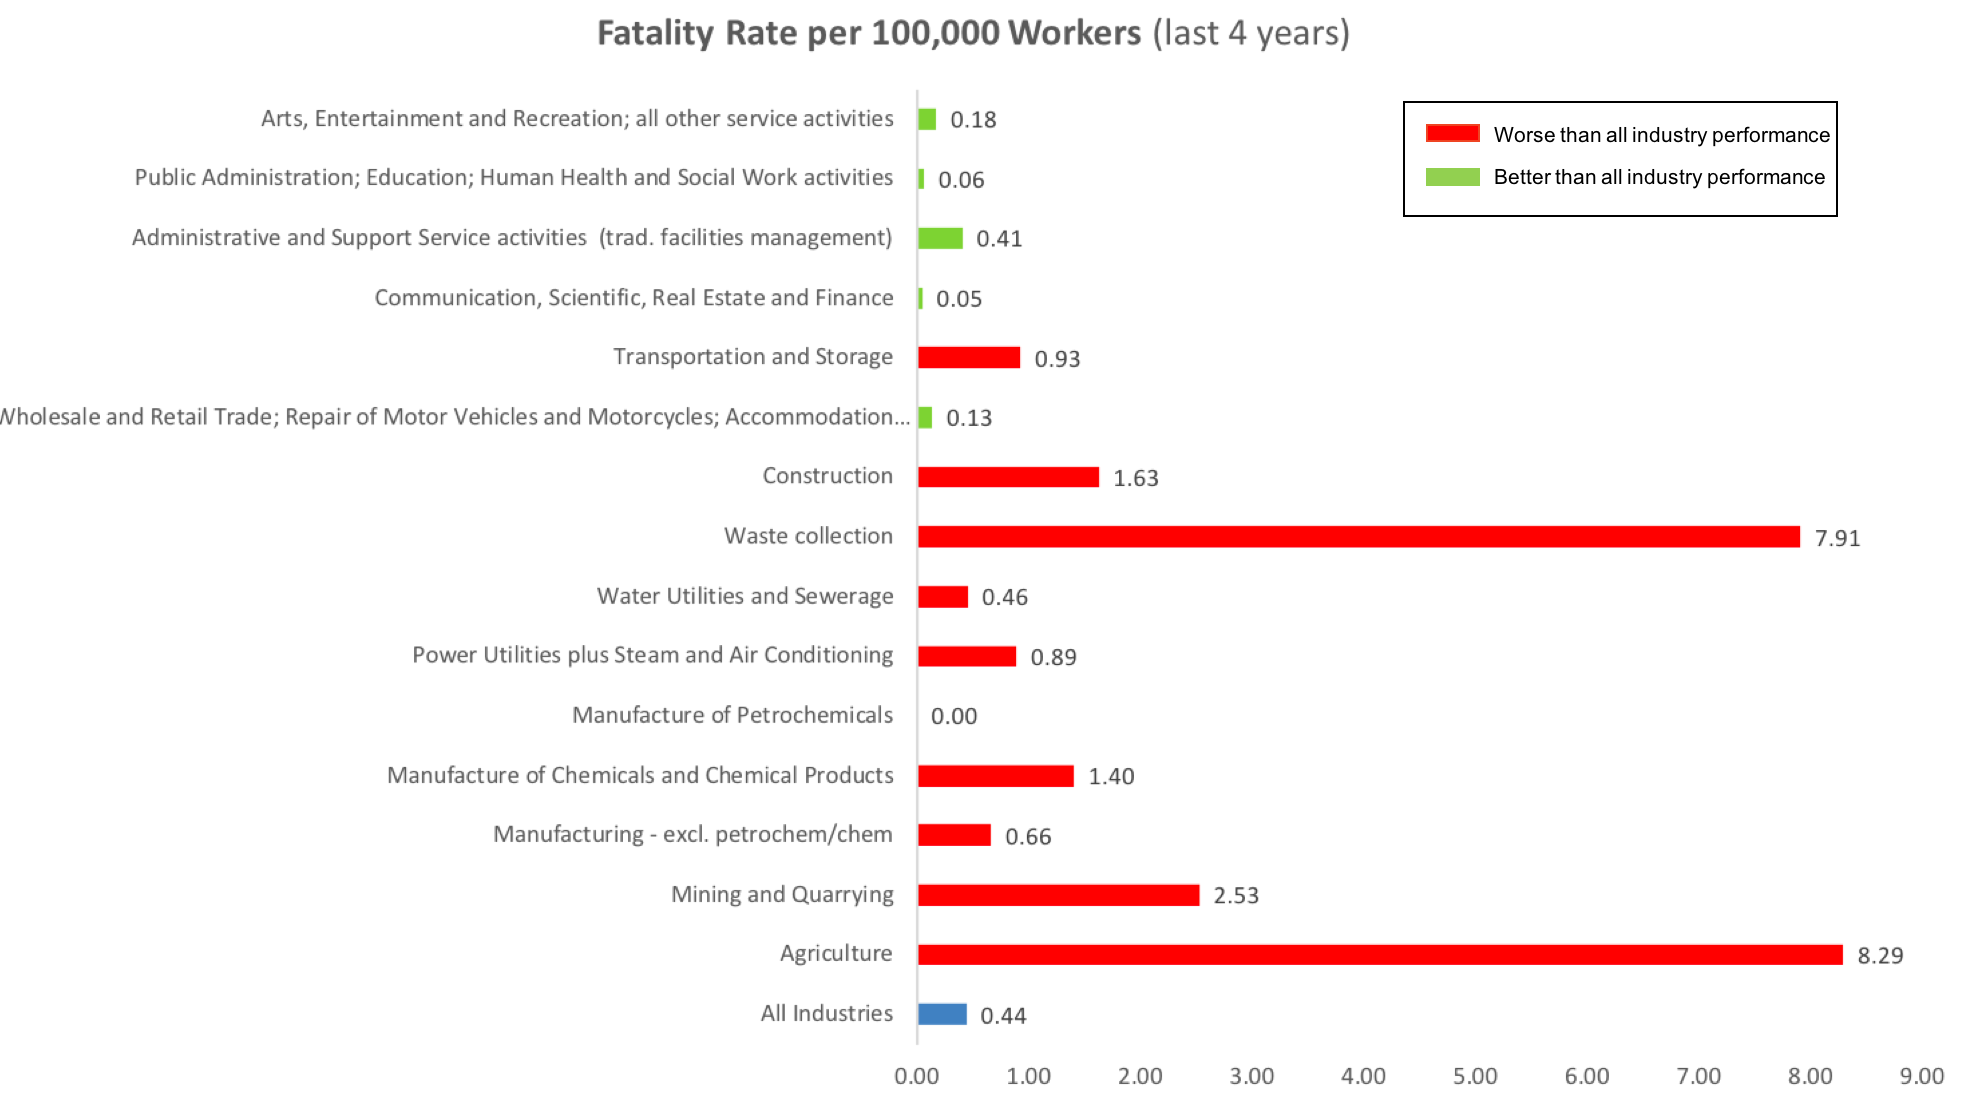 4 Year Fatality Rates by Sector